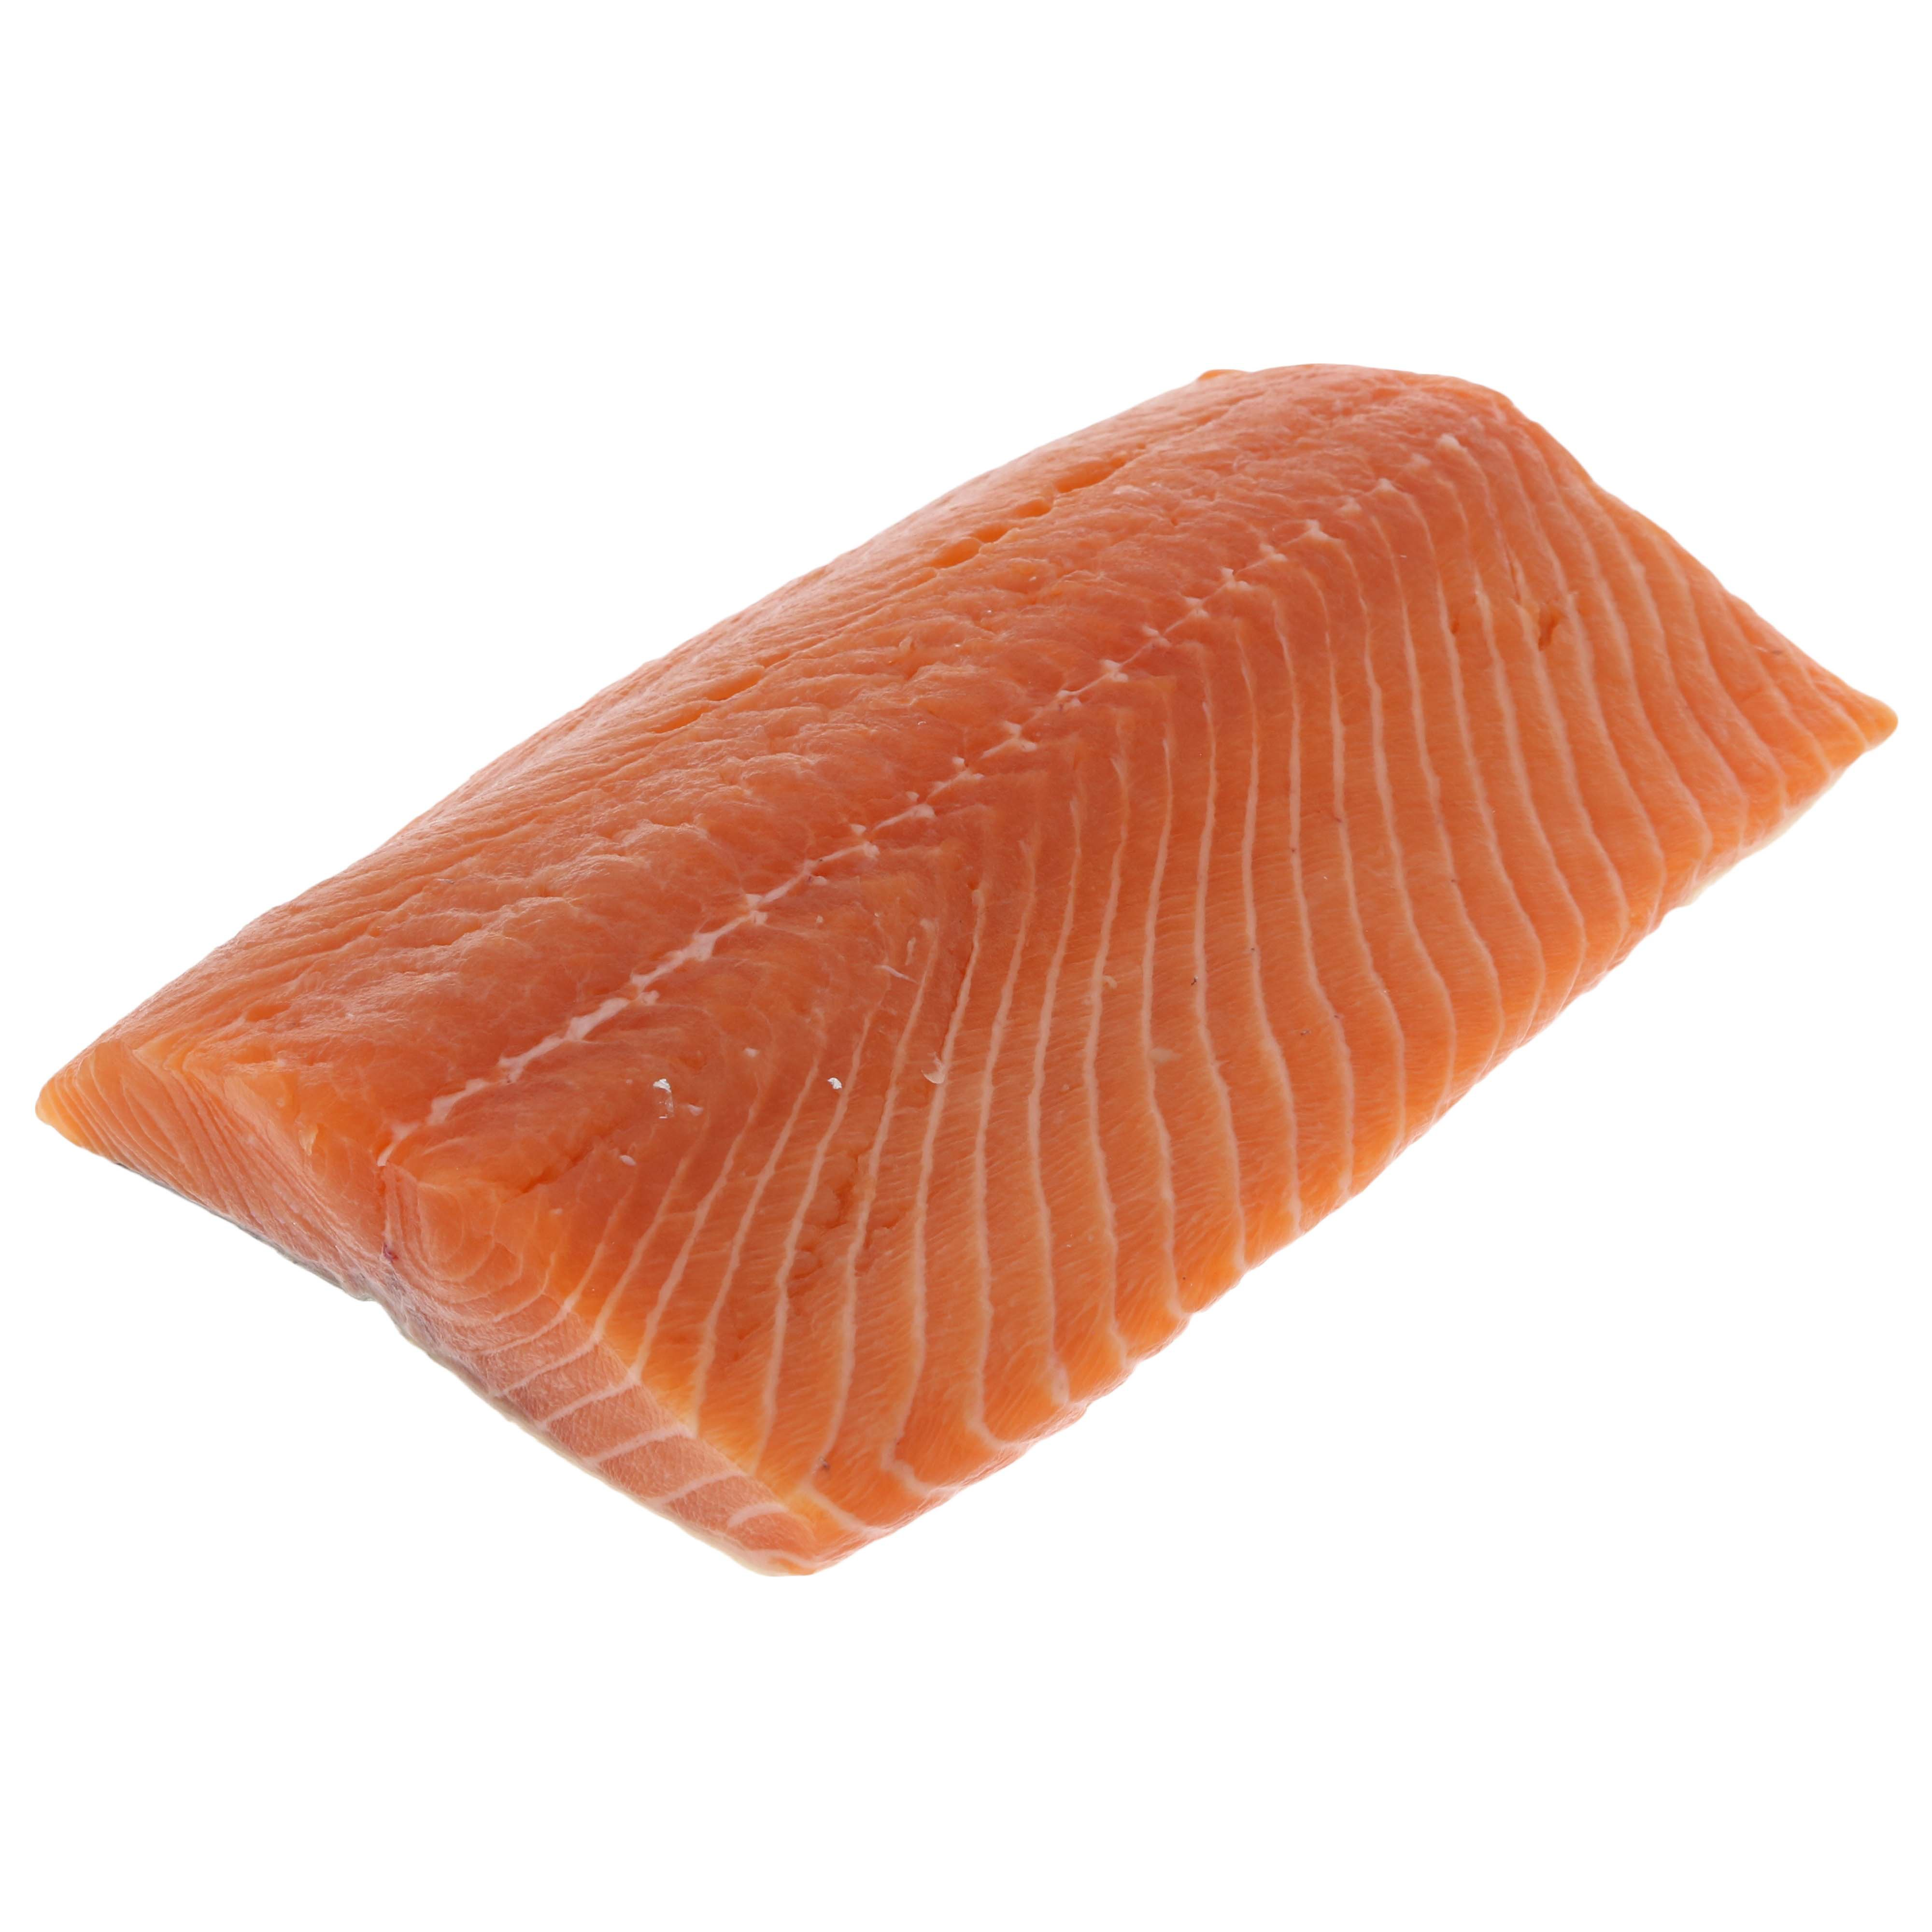 Image result for whole atlantic salmon slab with skin